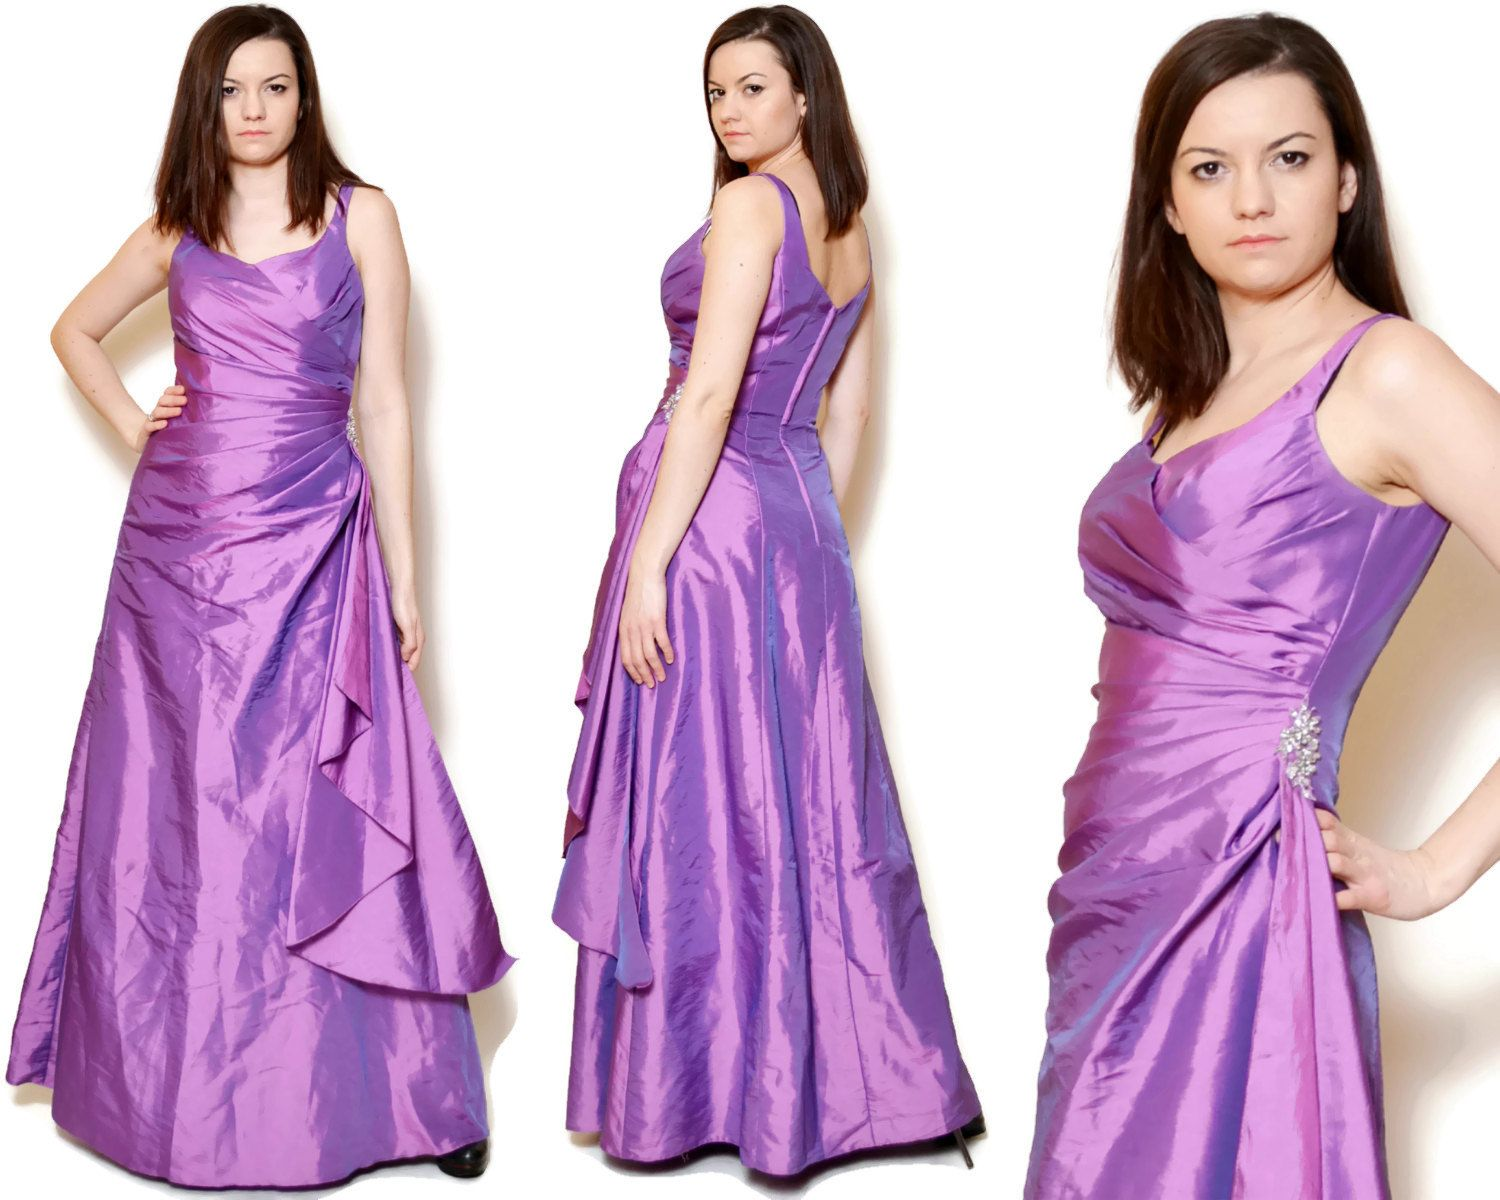 Vintage pink prom dress made in China by Eternity Bride.  The model on the pictures is size S/36 and 165 cm height. Please check measurements with your own to avoid problems with the size. Make sure you double the measurements where shown (*2):  Label size: S/36 Total lenght: 147 cm / 57.8 inches Armpit to bottom: 128 cm / 50.3 inches Armpit to armpit: 42.5 cm *2 / 16.7 inches *2 Waist: 35 cm *2 / 13.7 inches *2 Hips: 50.5 cm *2 / 19.8 inches *2 Bottom Width...